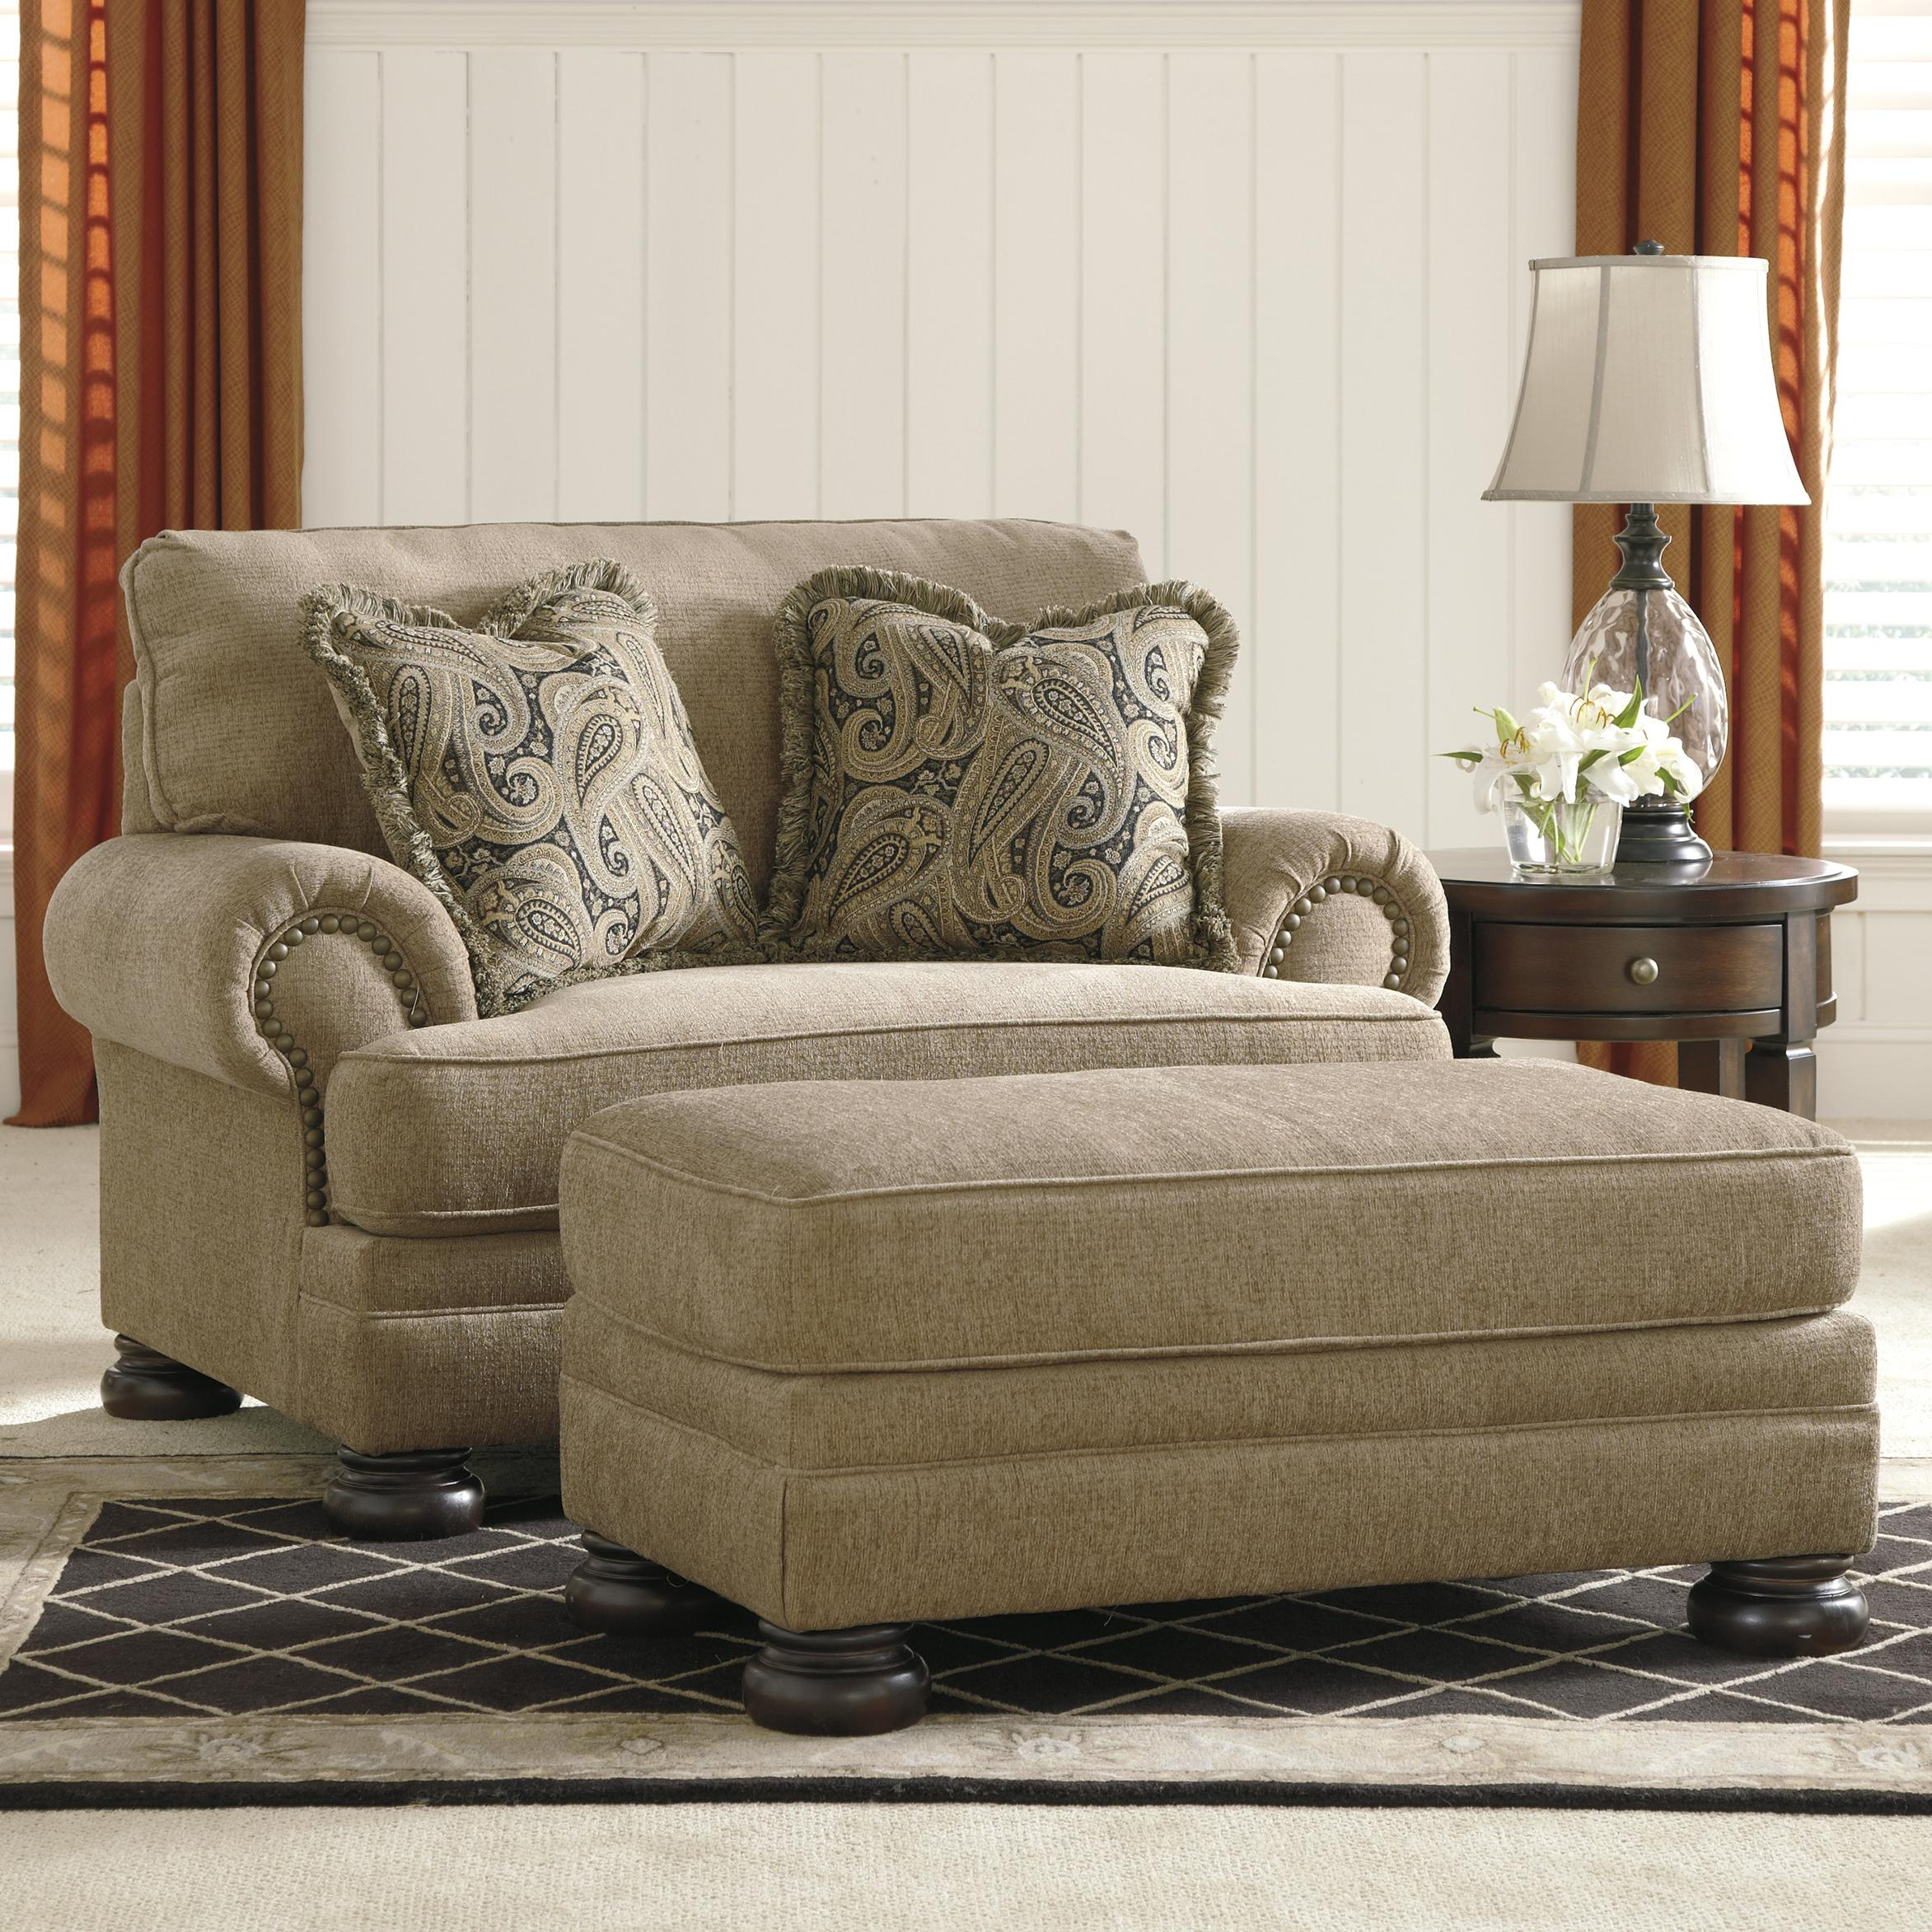 Ashley signature design keereel sand transitional chair for Oversized living room chair